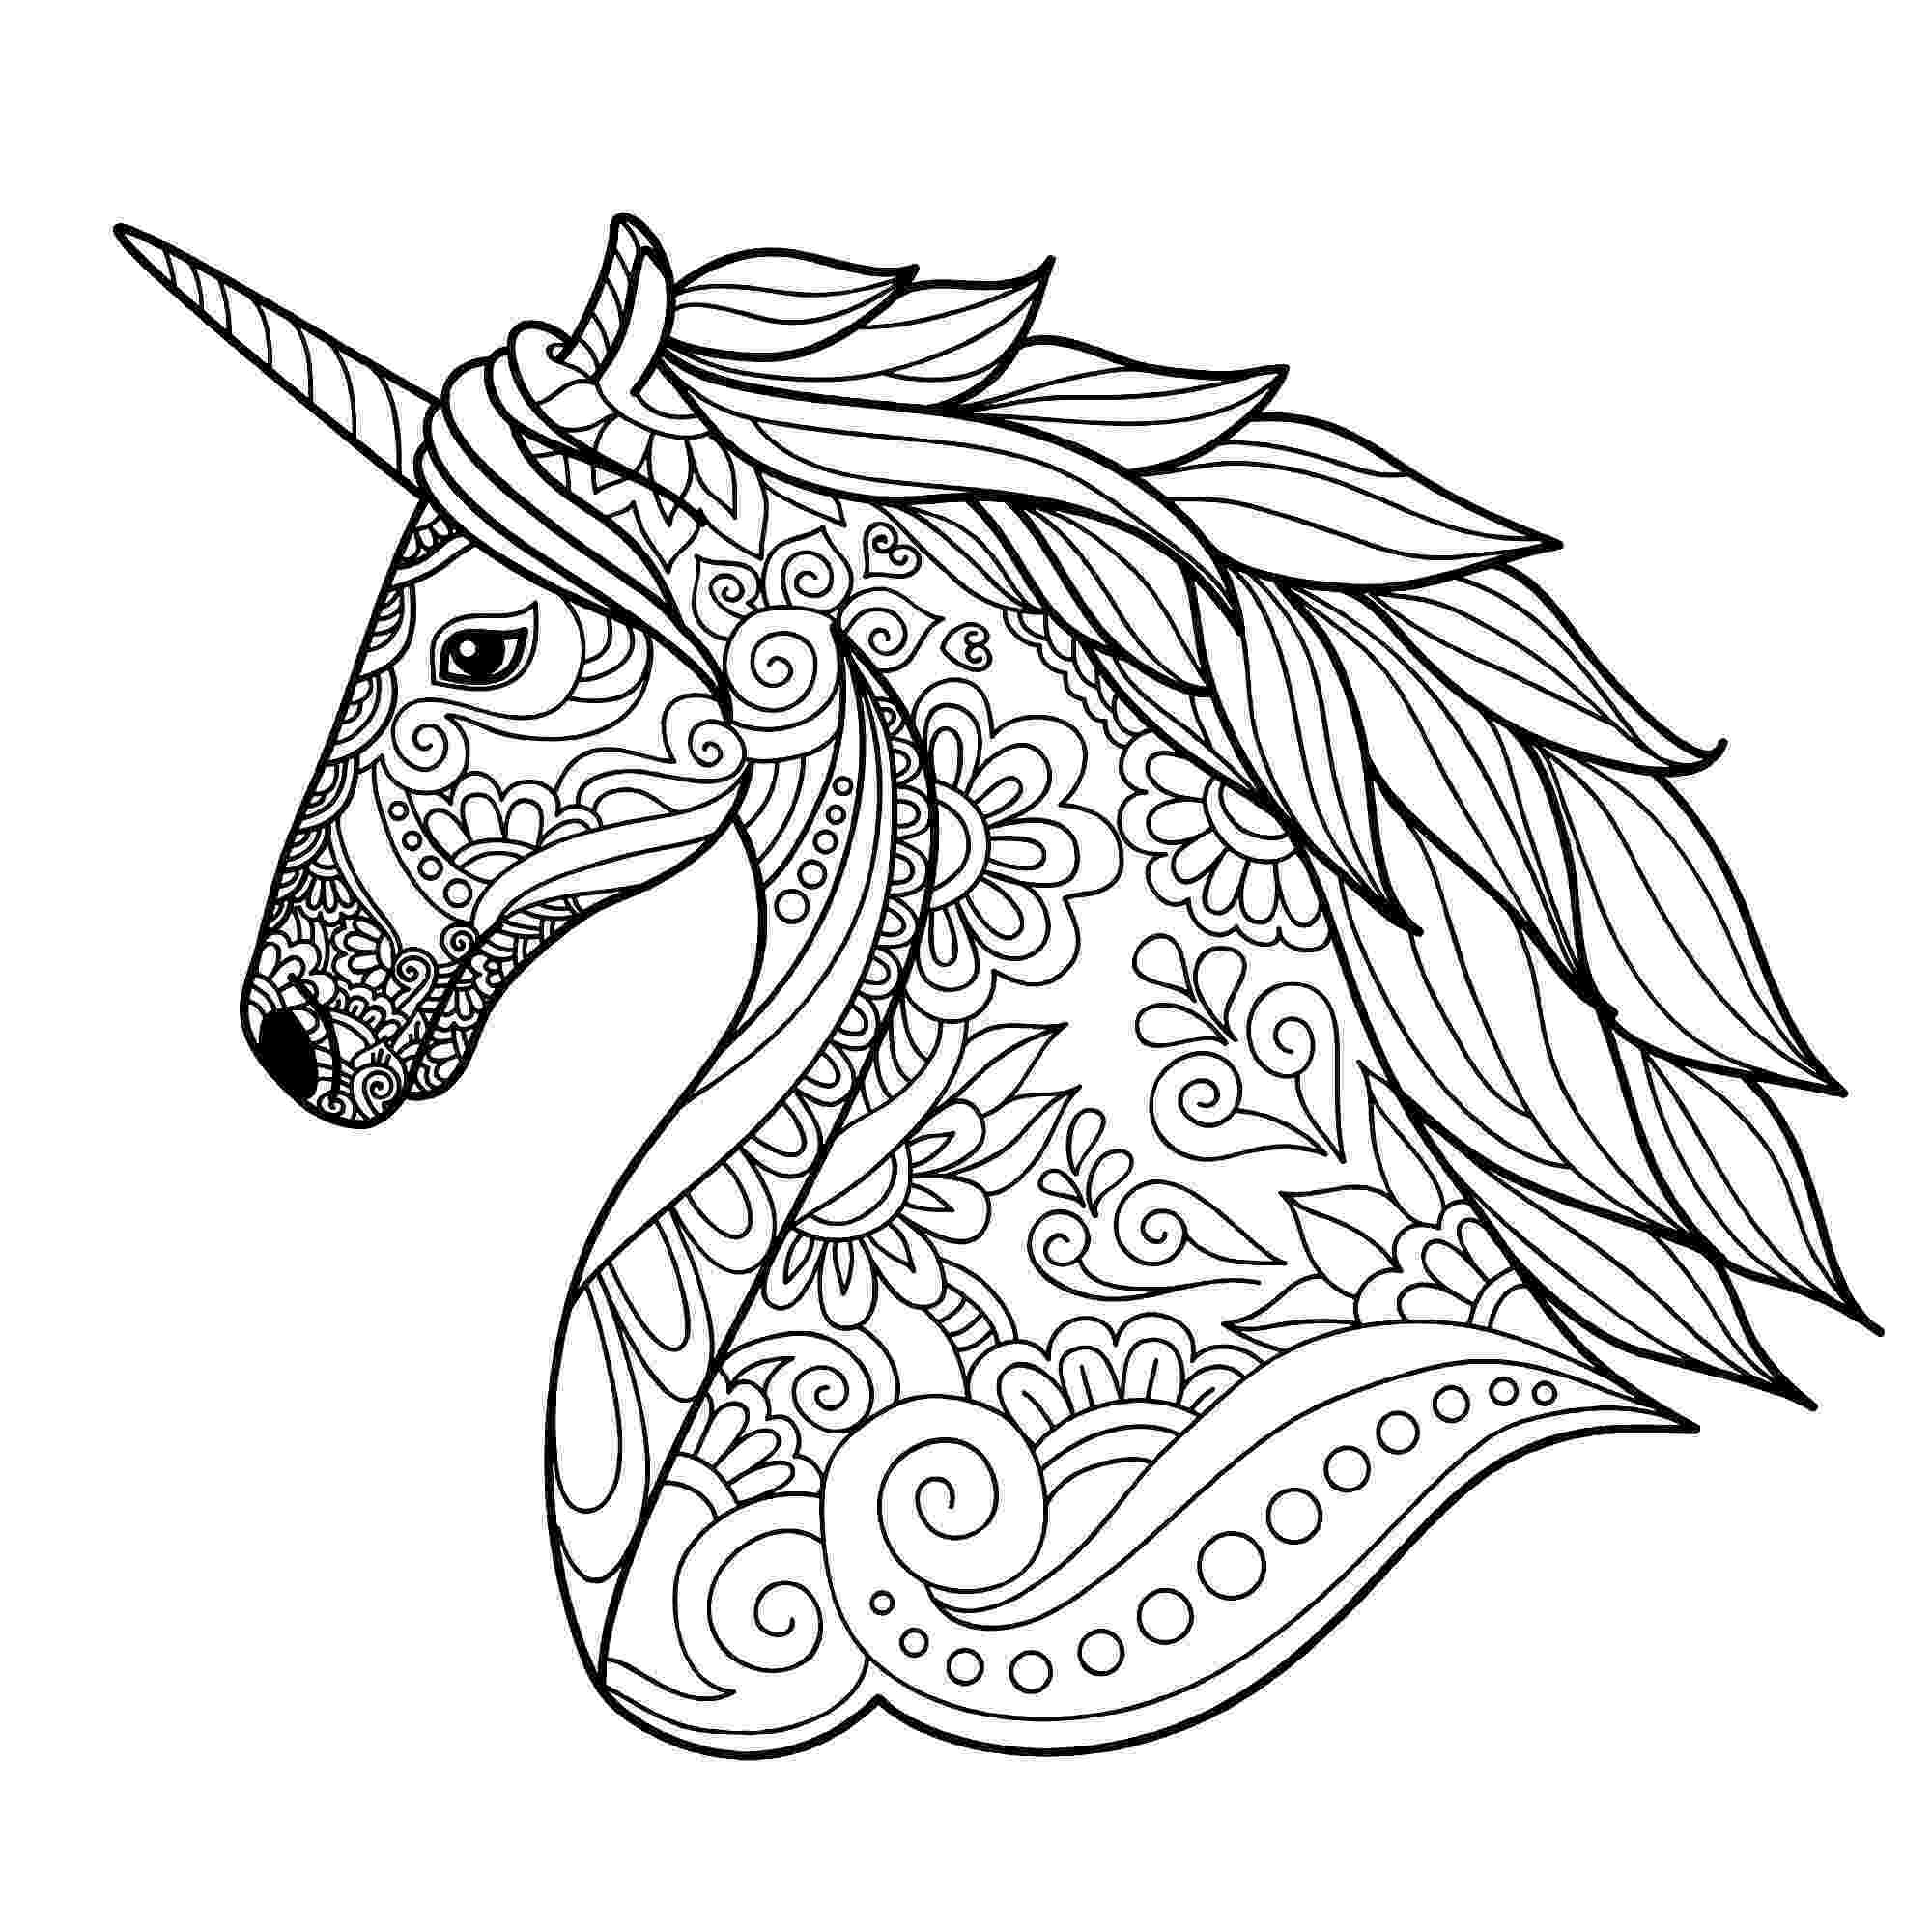 unicorn printable coloring pages print download unicorn coloring pages for children coloring unicorn printable pages